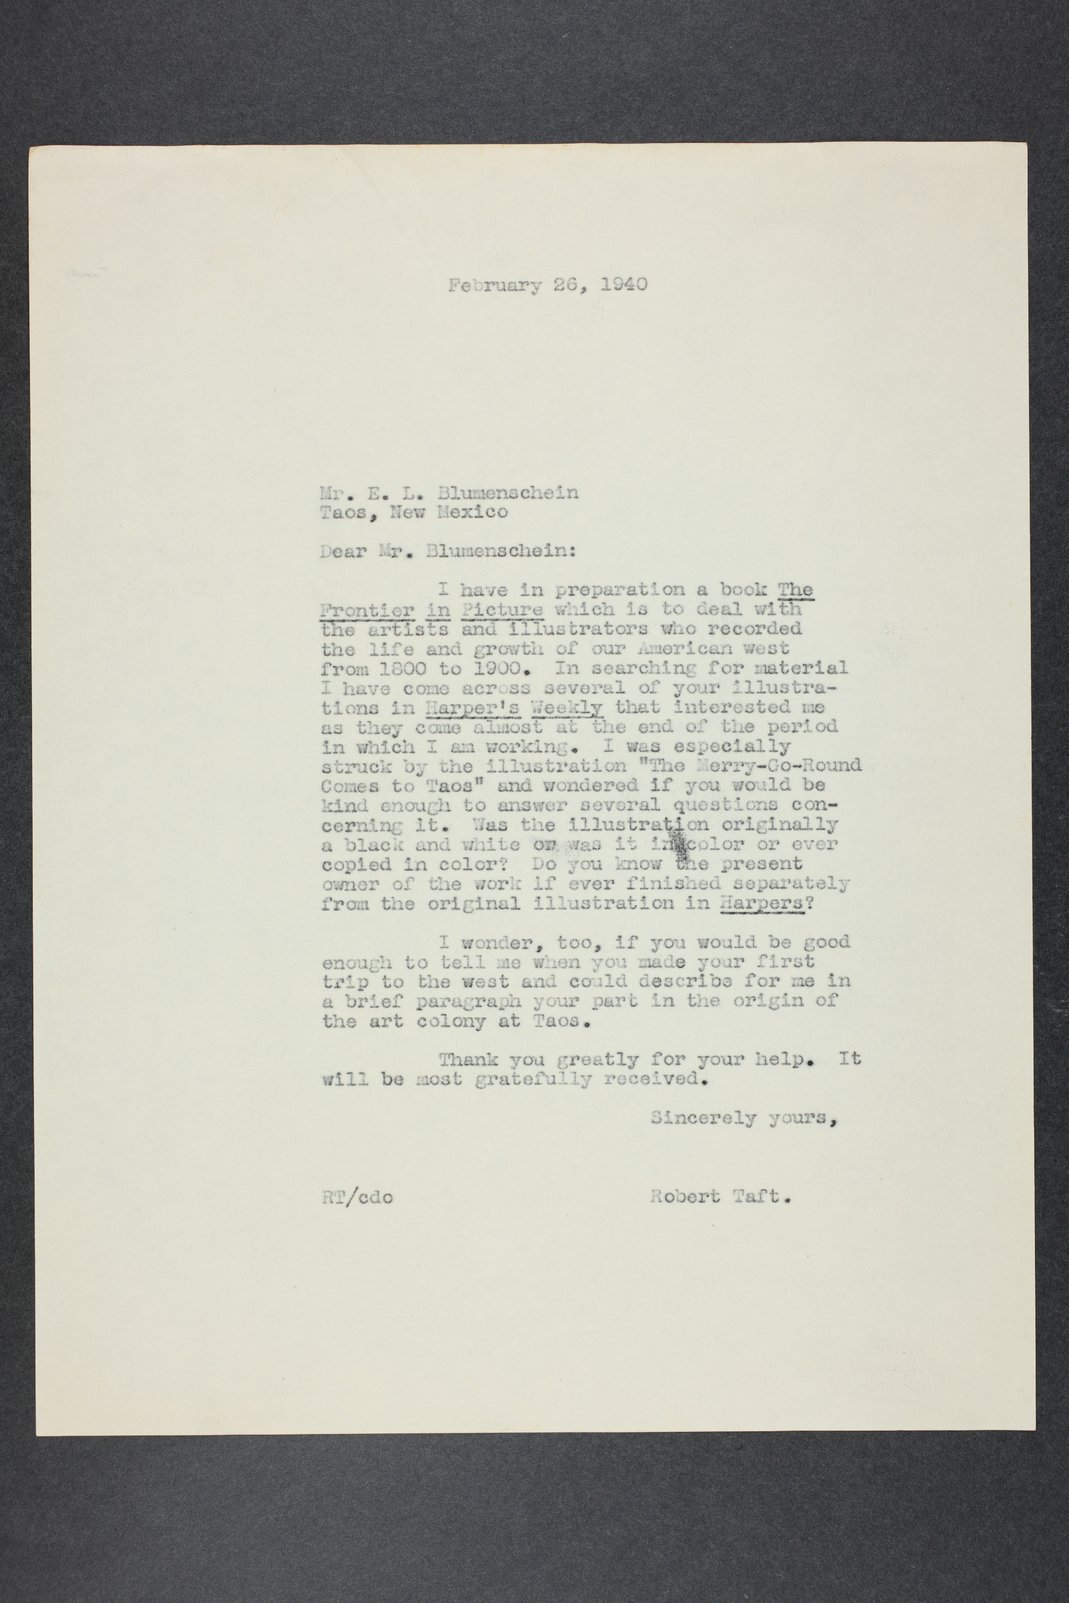 Robert Taft correspondence related to frontier artists, Blumenshein - Cary - 1  [Folder 1, Ernest L. Blumenshein]